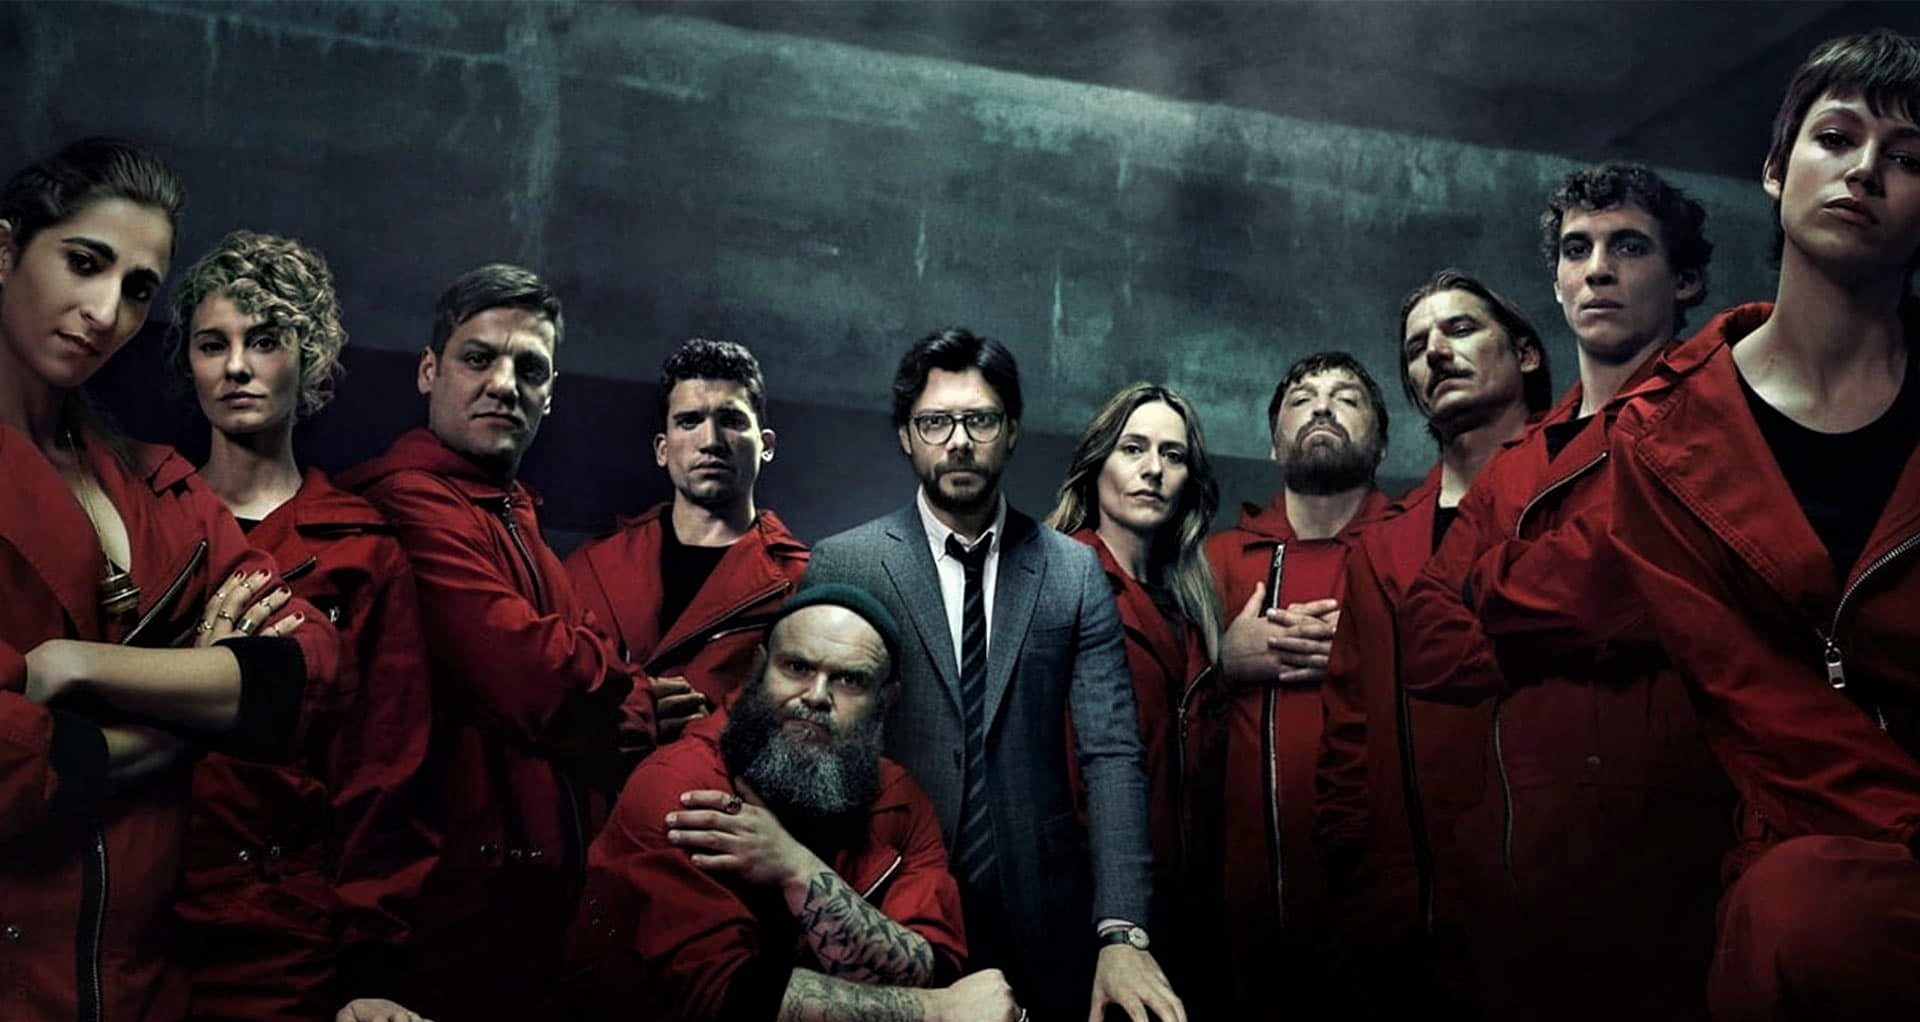 Money Heist Season 1 Episode 1 in English with English Subtitle